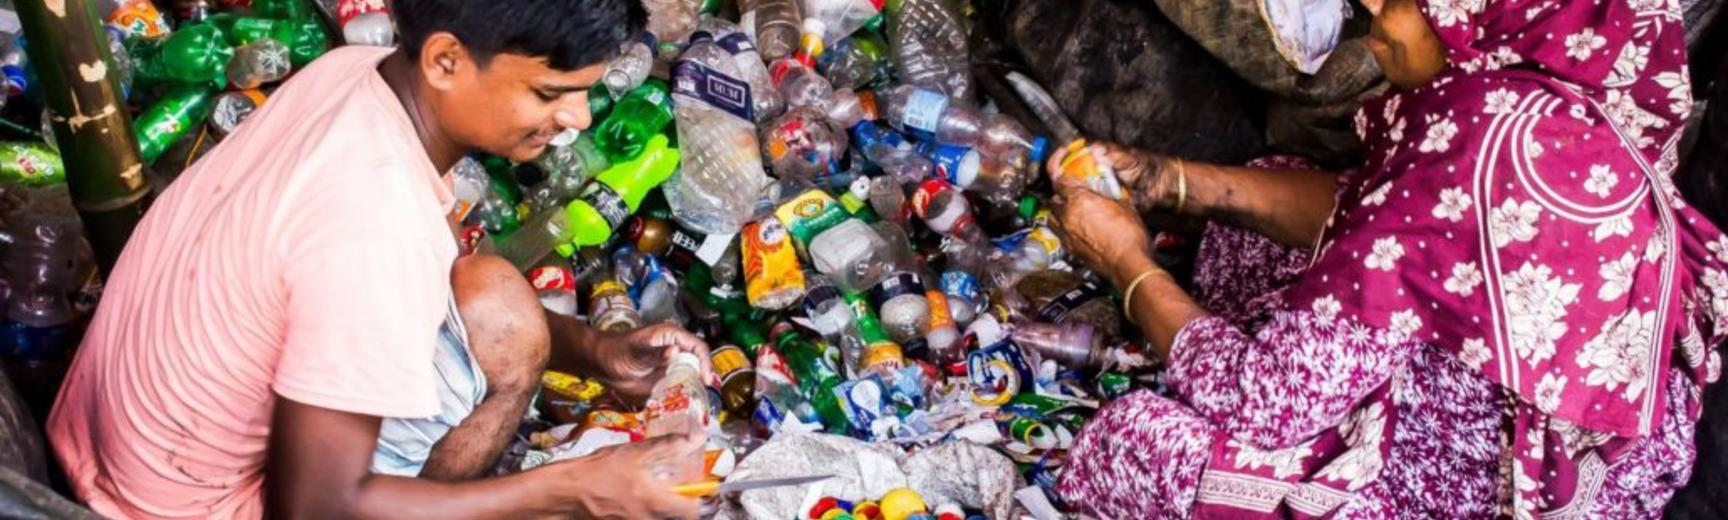 two people sifting through pile of plastic bottles